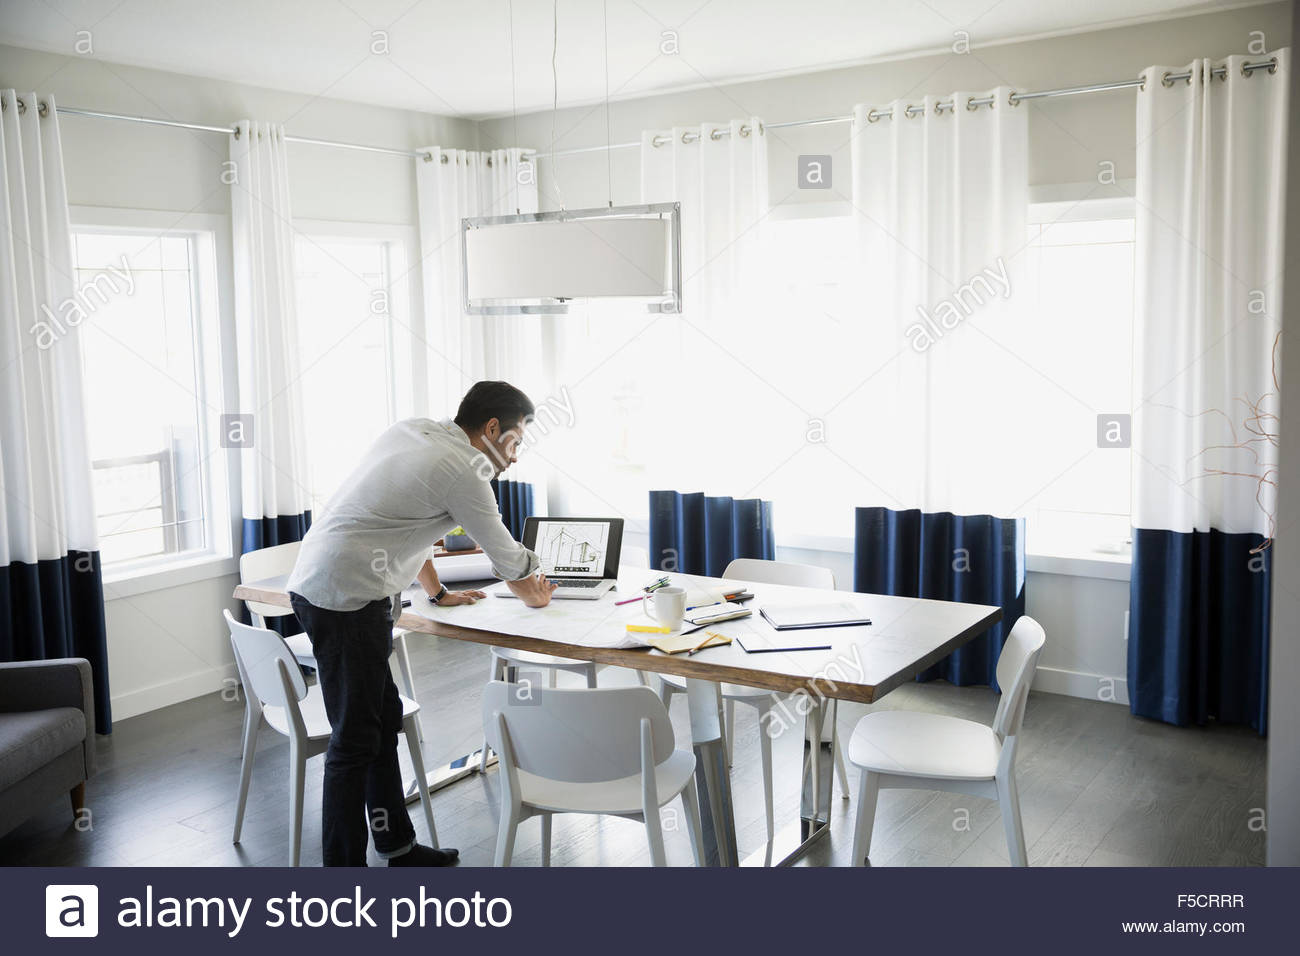 Architect working at laptop on dining table - Stock Image